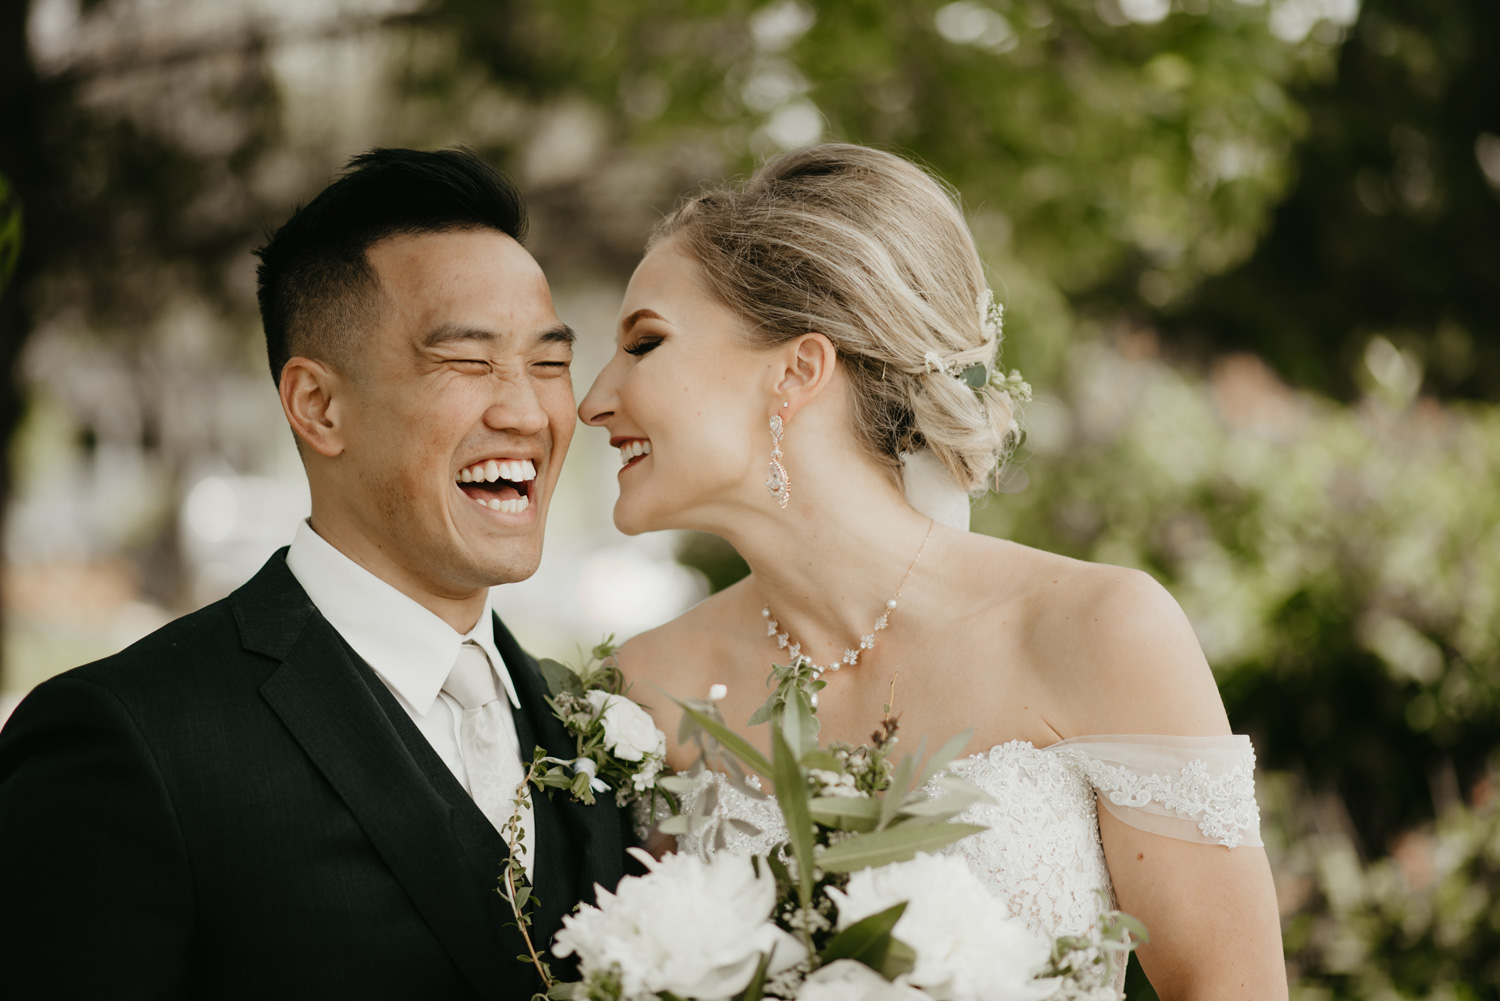 Bride and groom laughing together close up